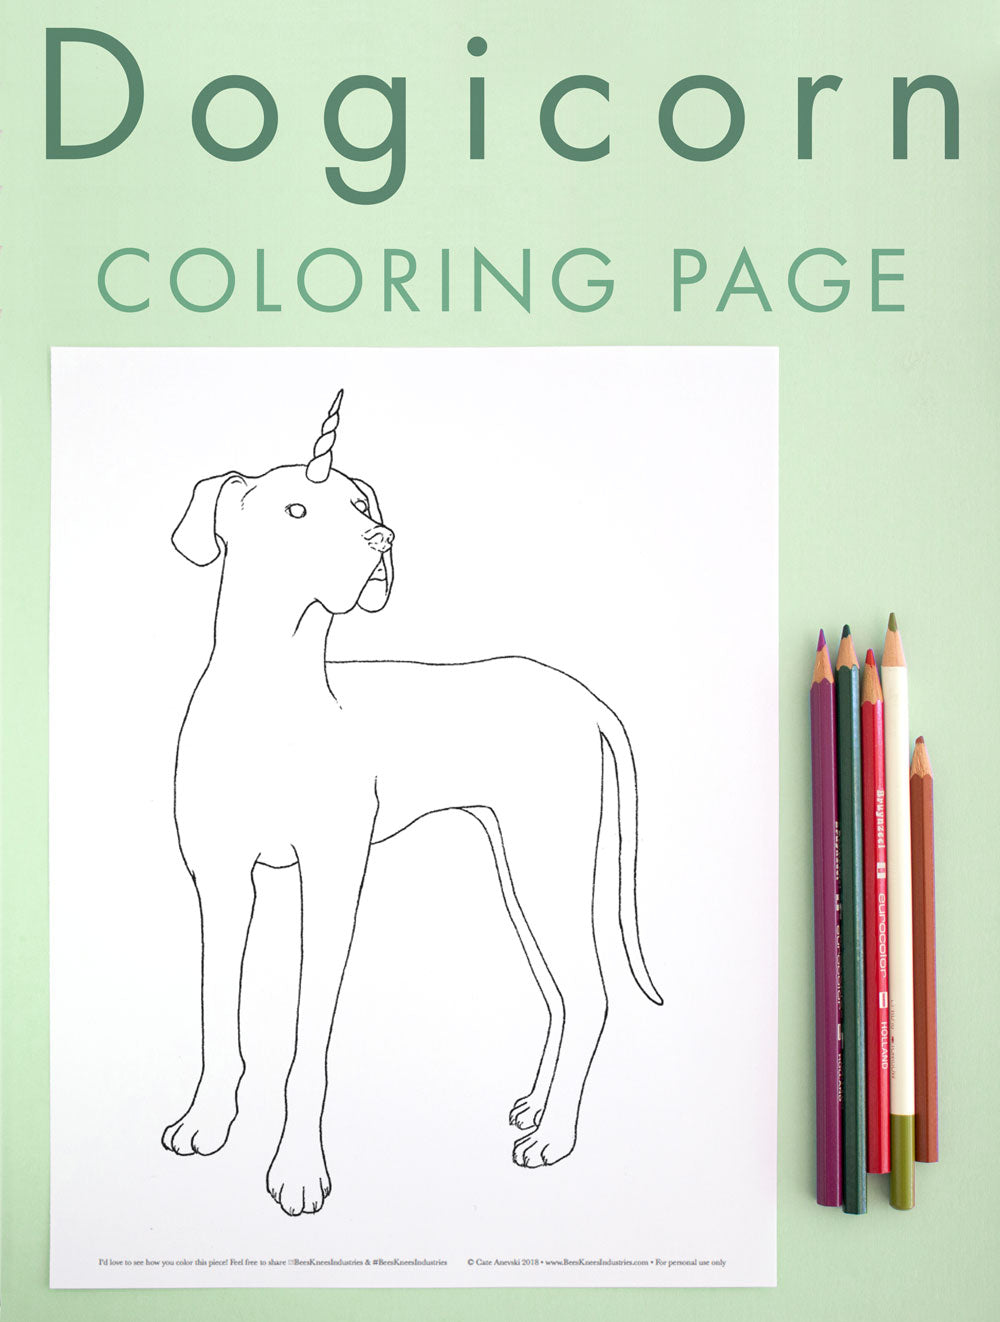 Dogicorn Coloring Page